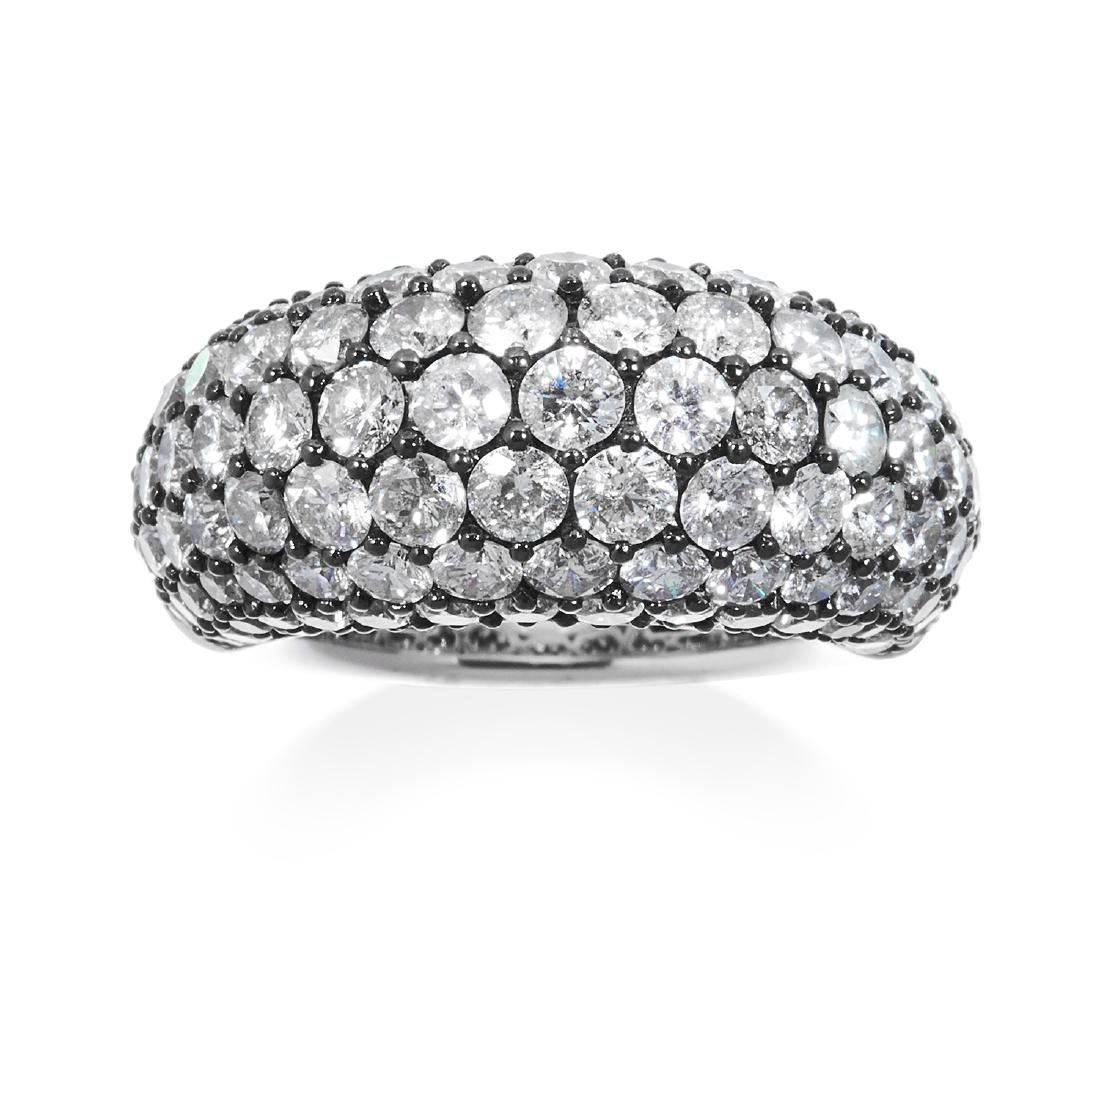 A DIAMOND DRESS RING in 18ct white gold, jewelled with